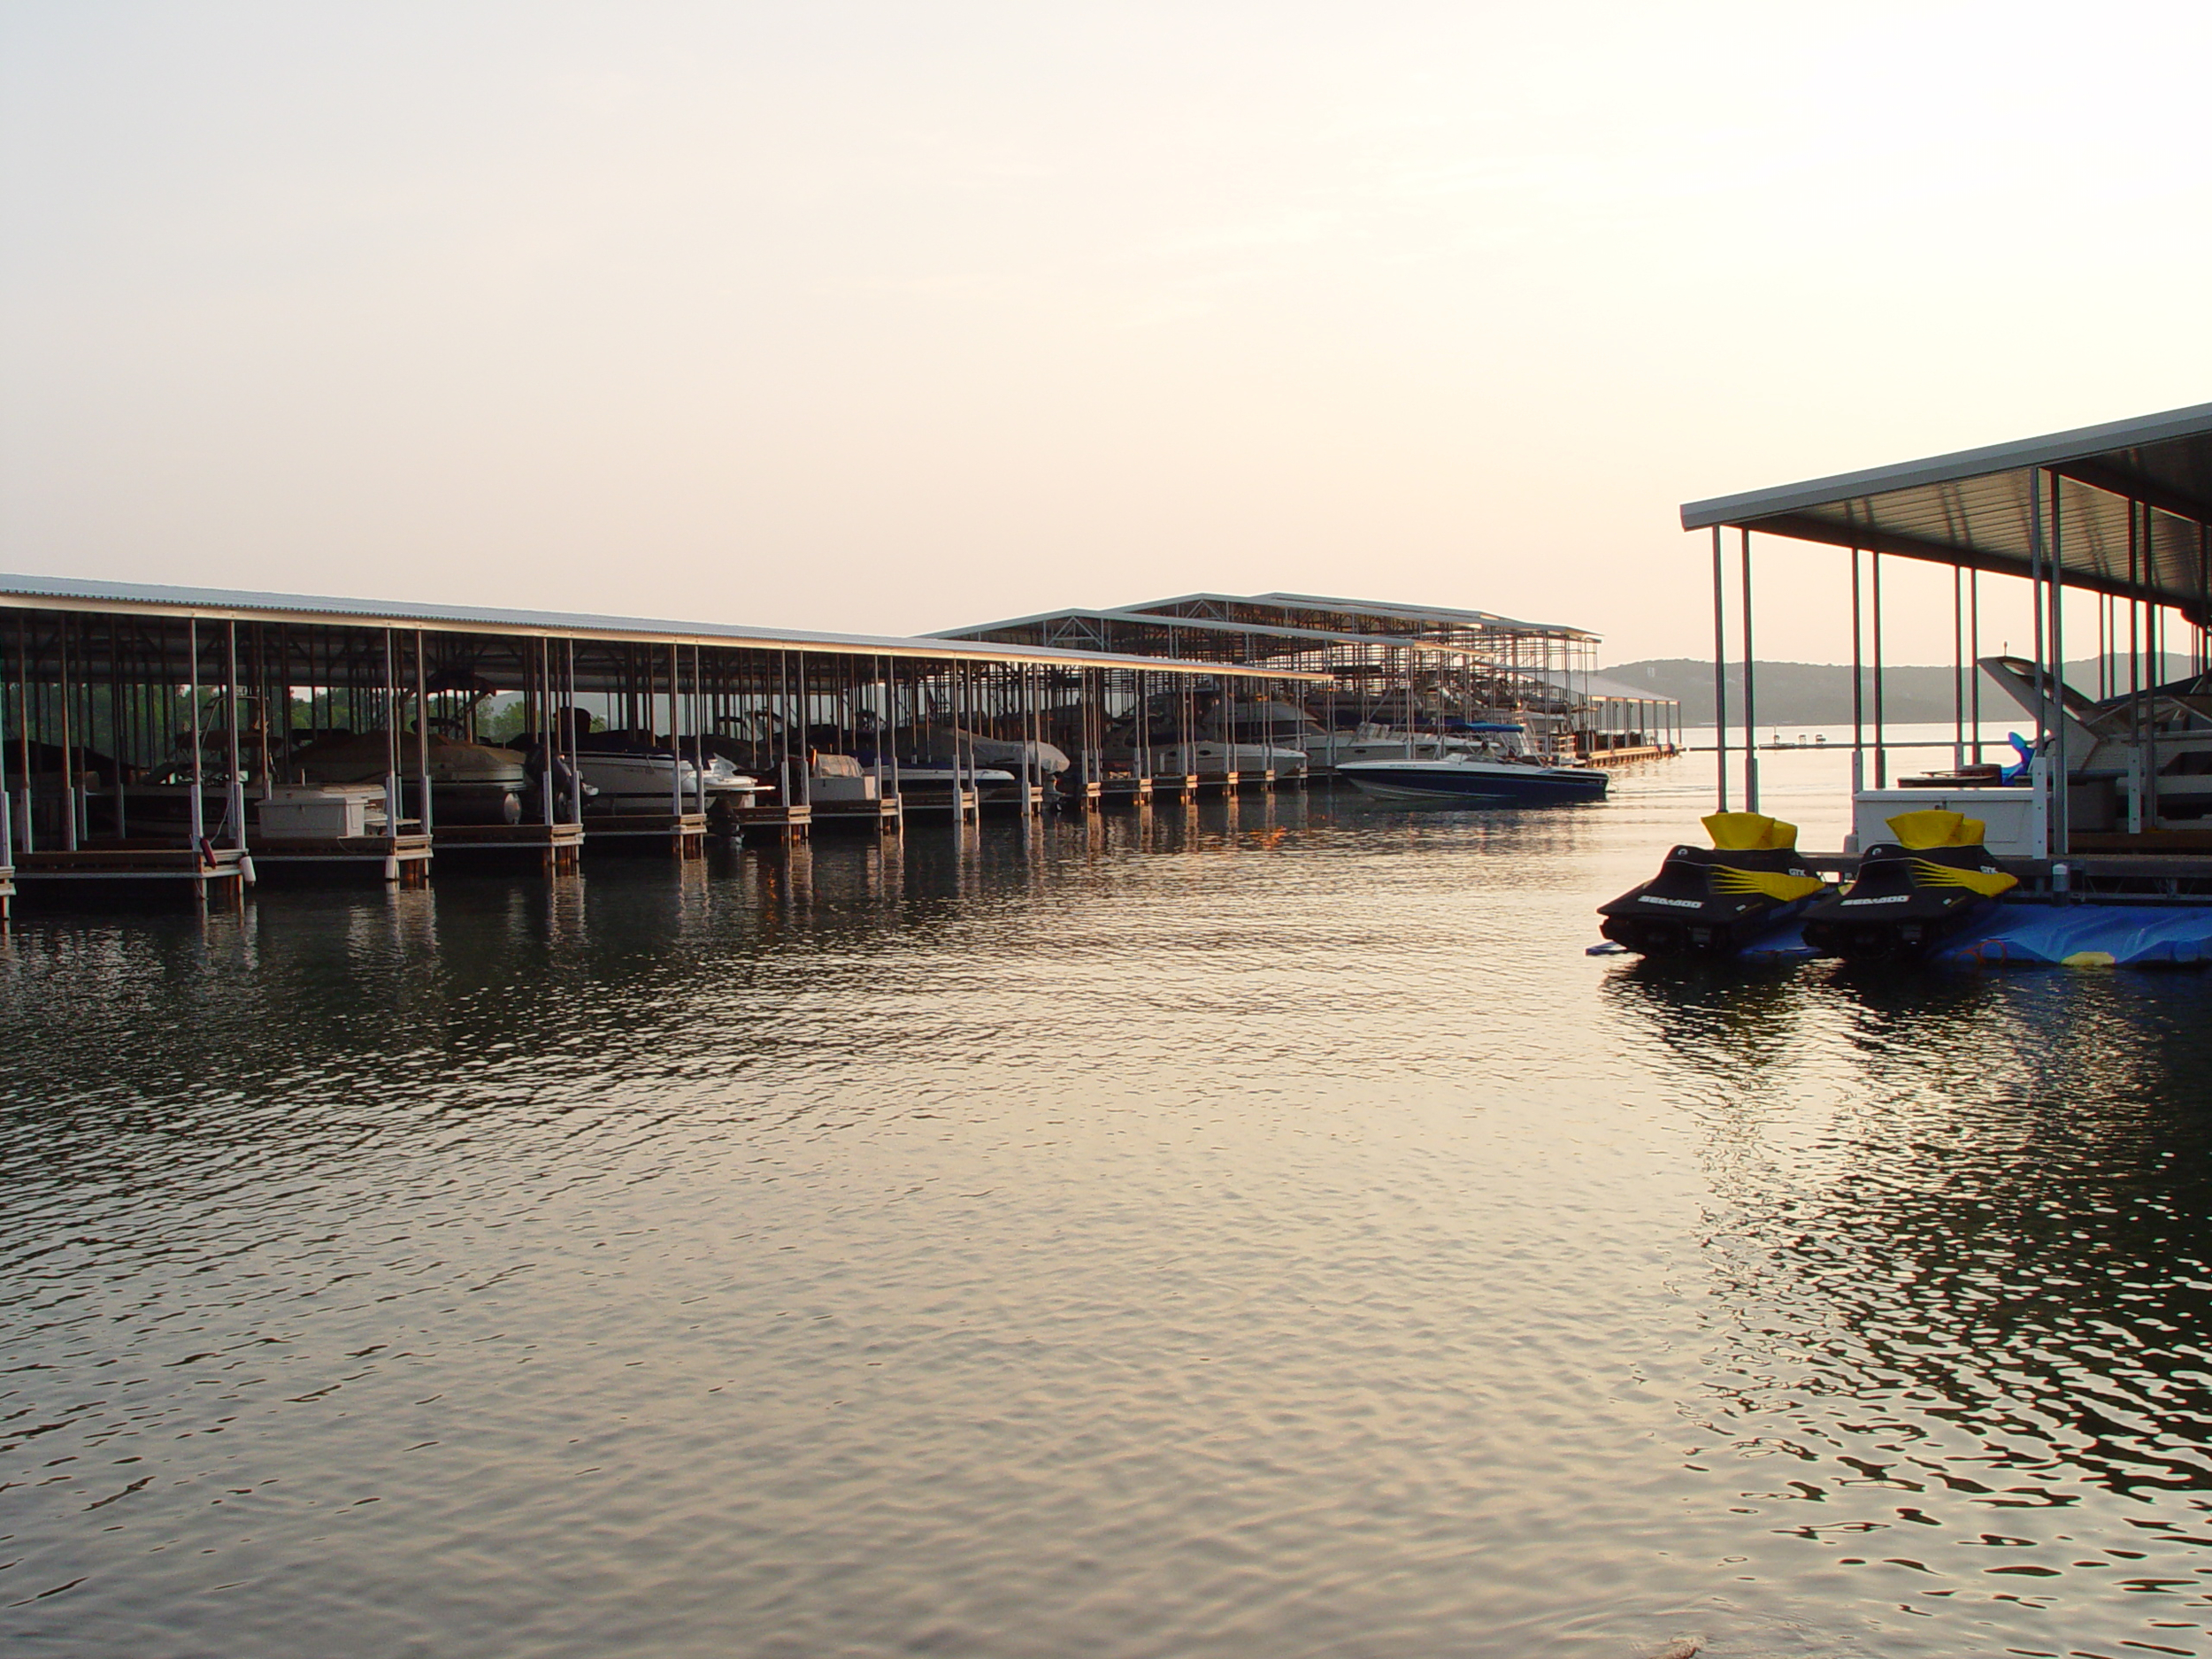 Just 10 minutes away, State Park Marina is the ideal choice for lake fun.